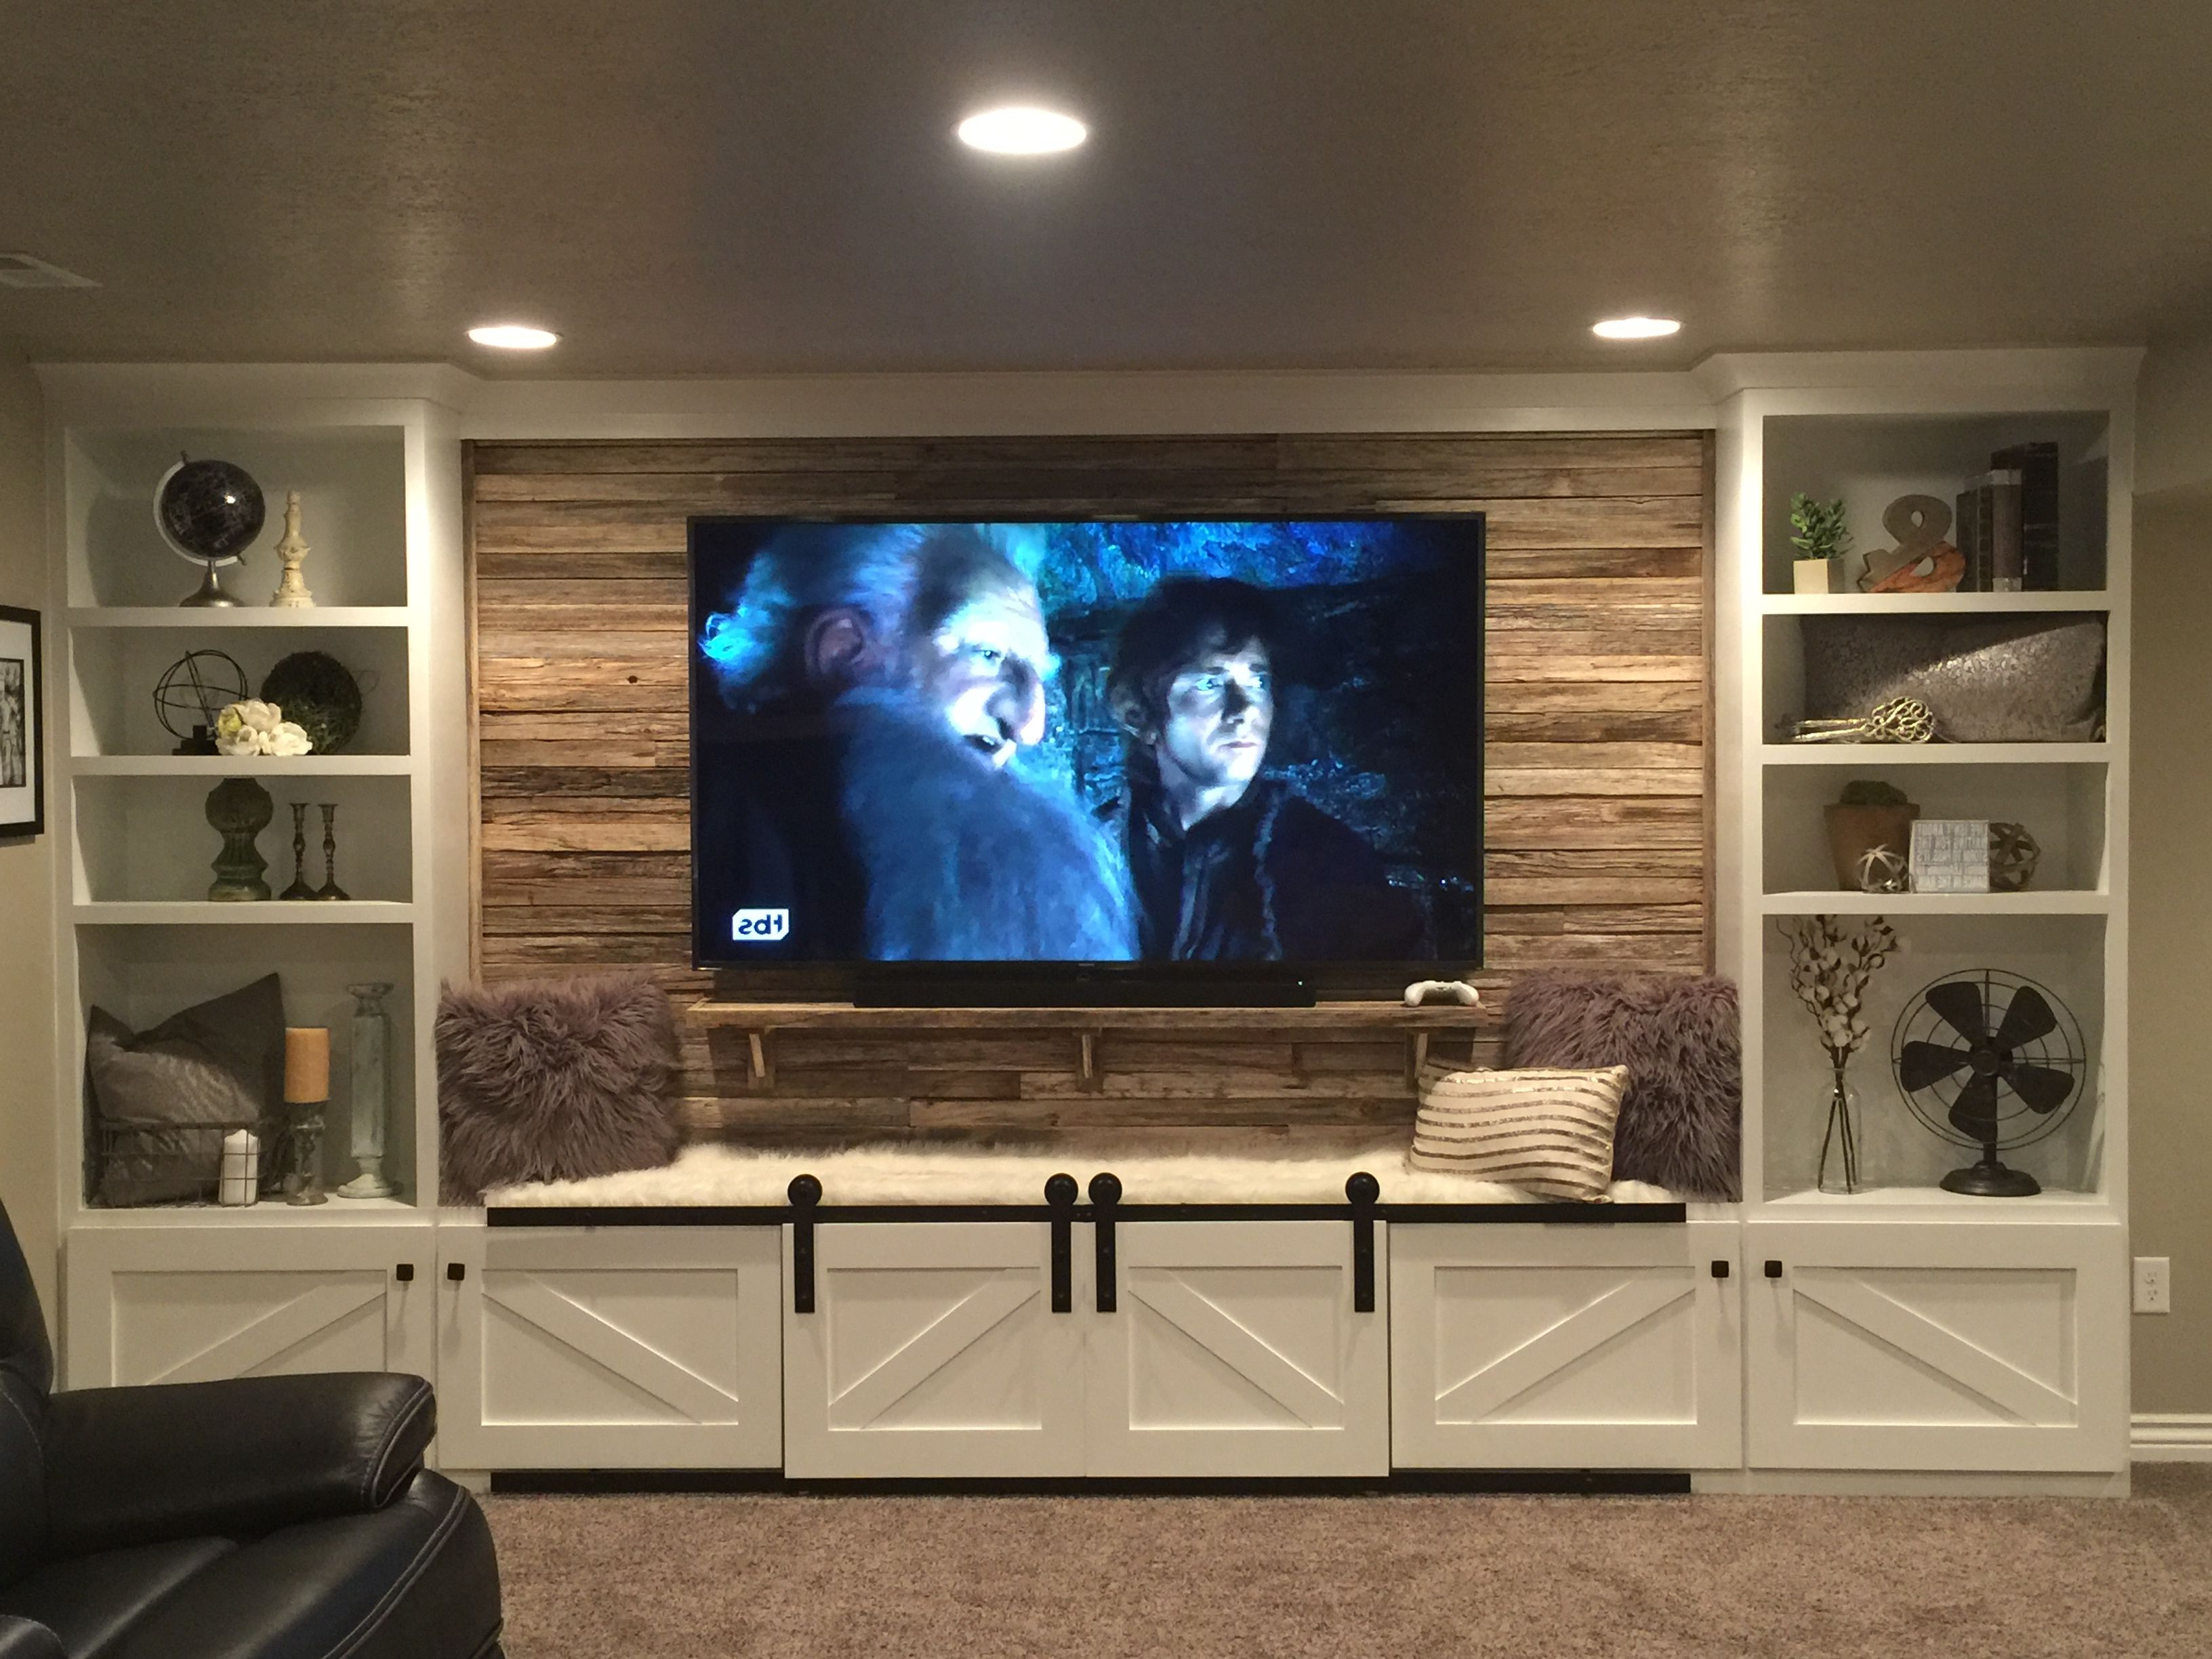 17 Diy Entertainment Center Ideas And Designs For Your New Home Regarding Favorite Tv Entertainment Unit (View 15 of 20)